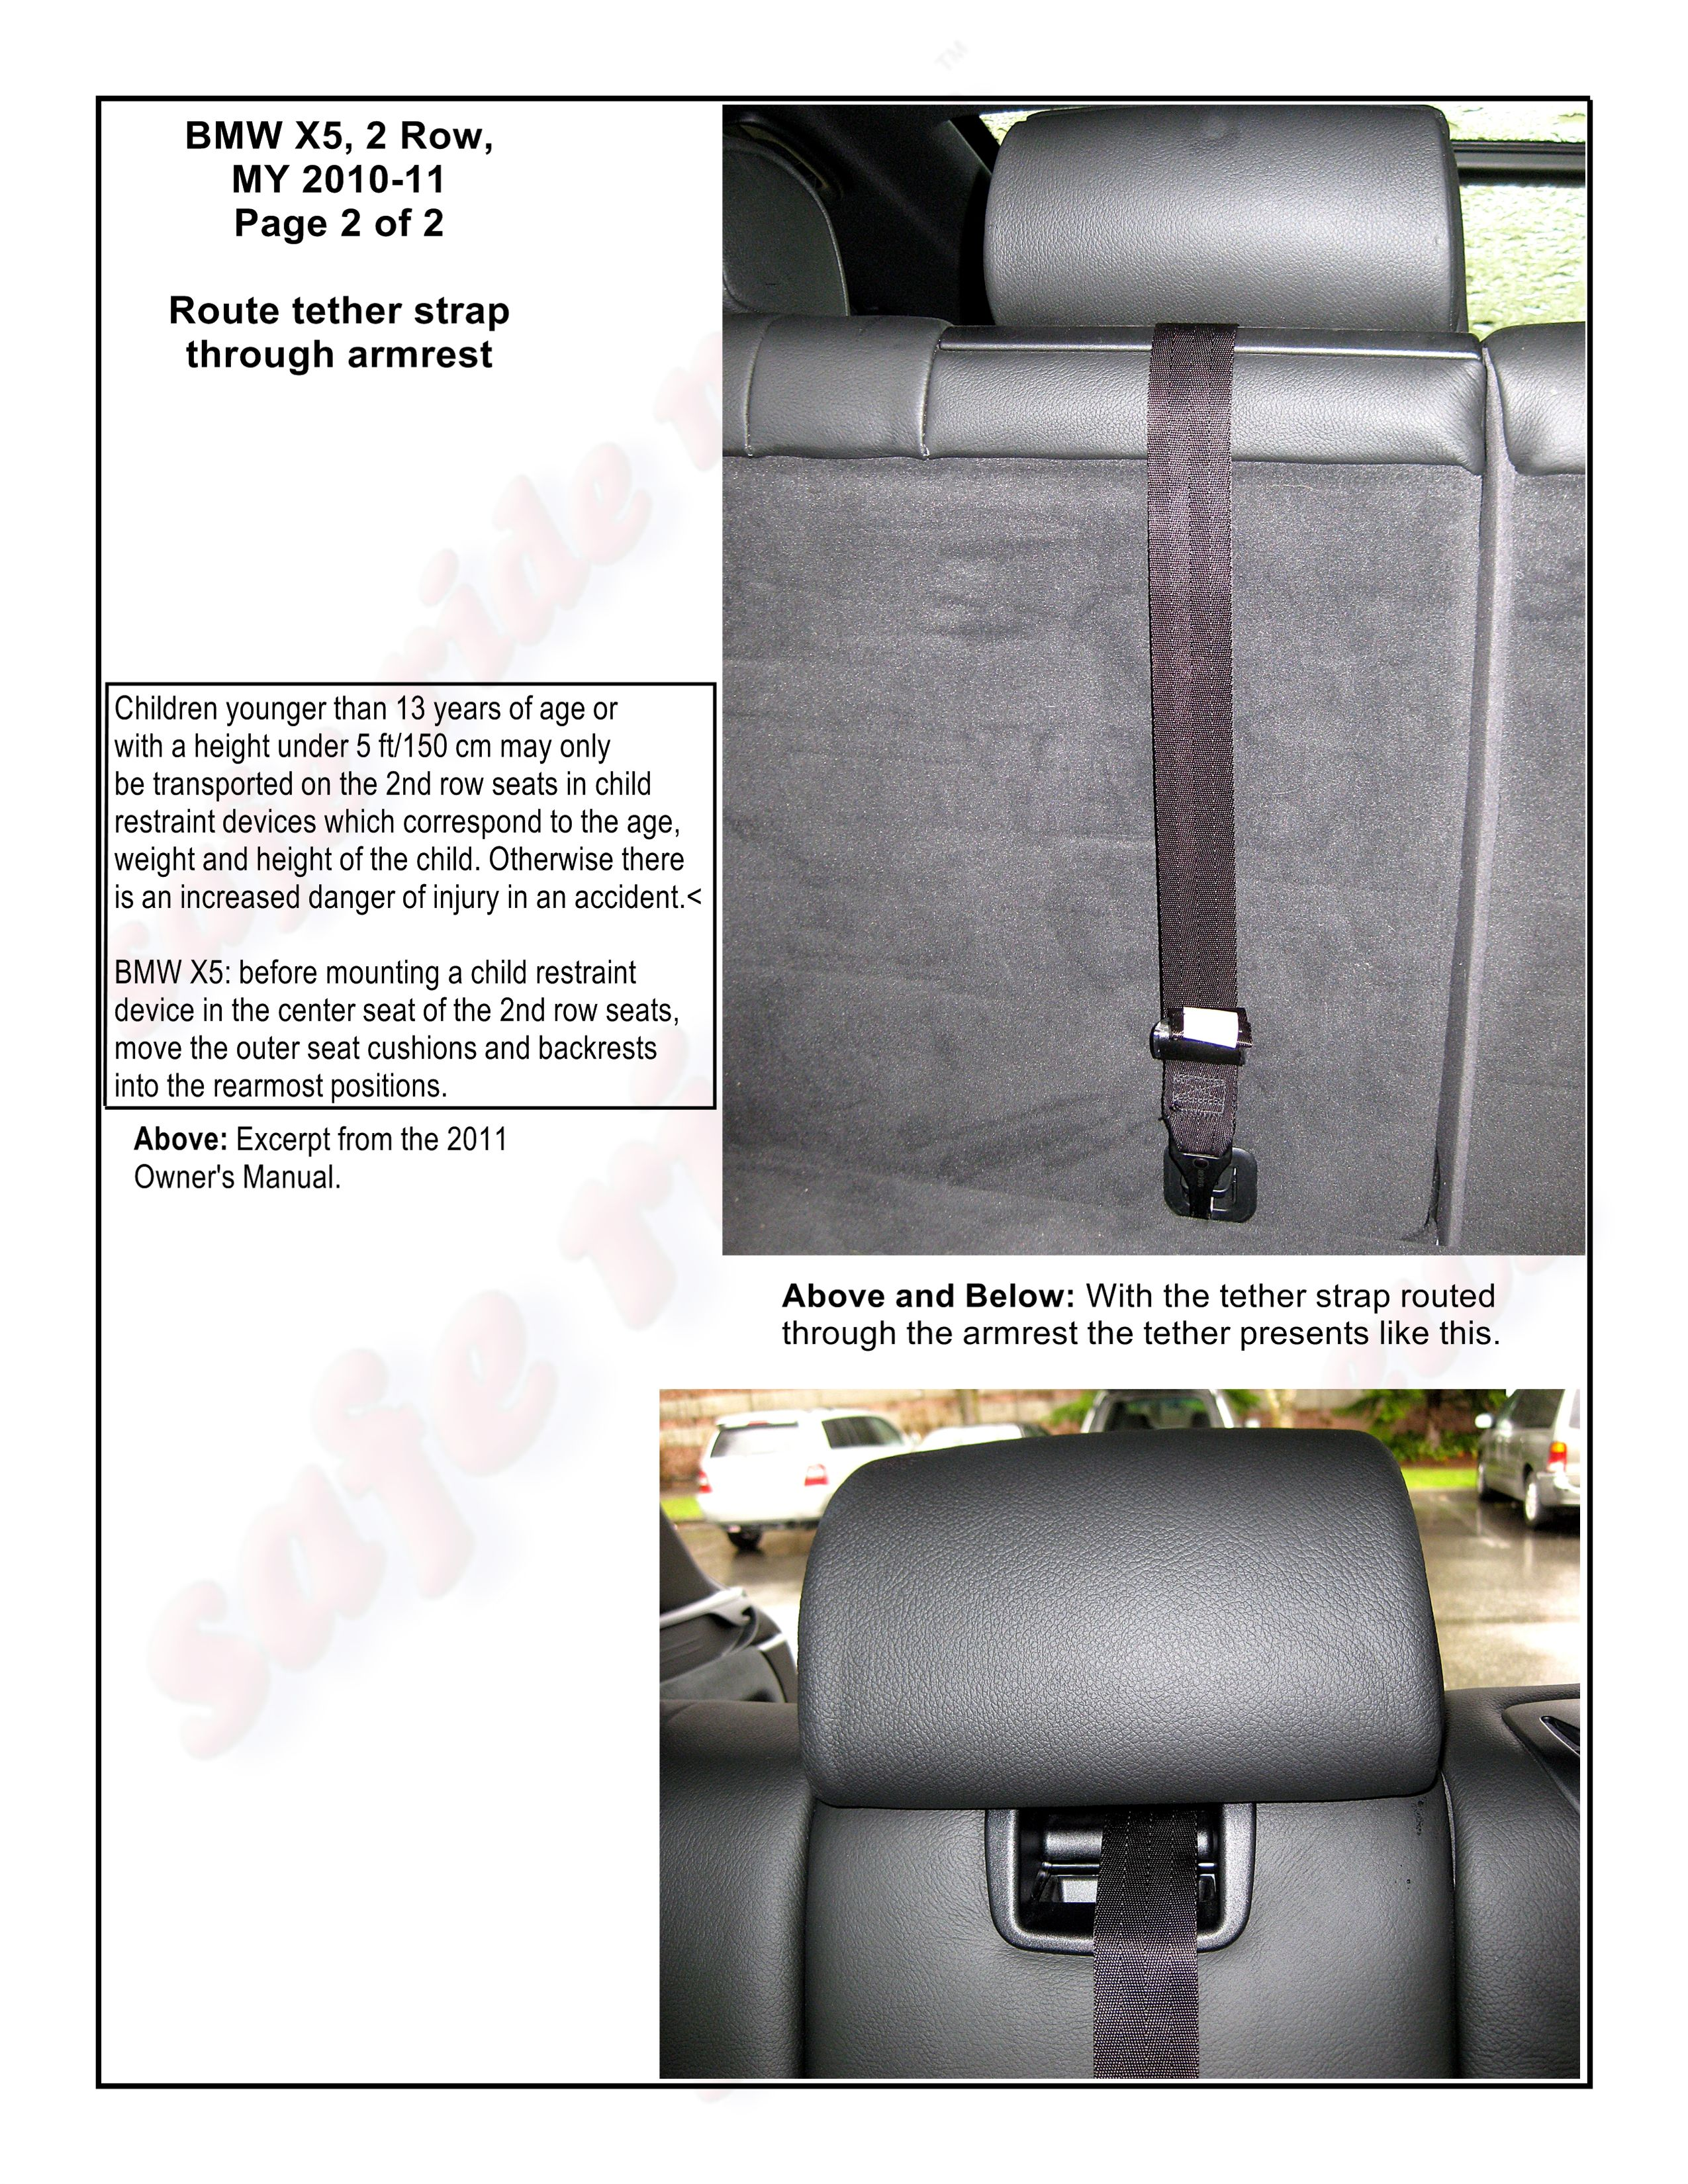 BMW X5, 2nd Row, MY 2010-2011, Page 2 of 2